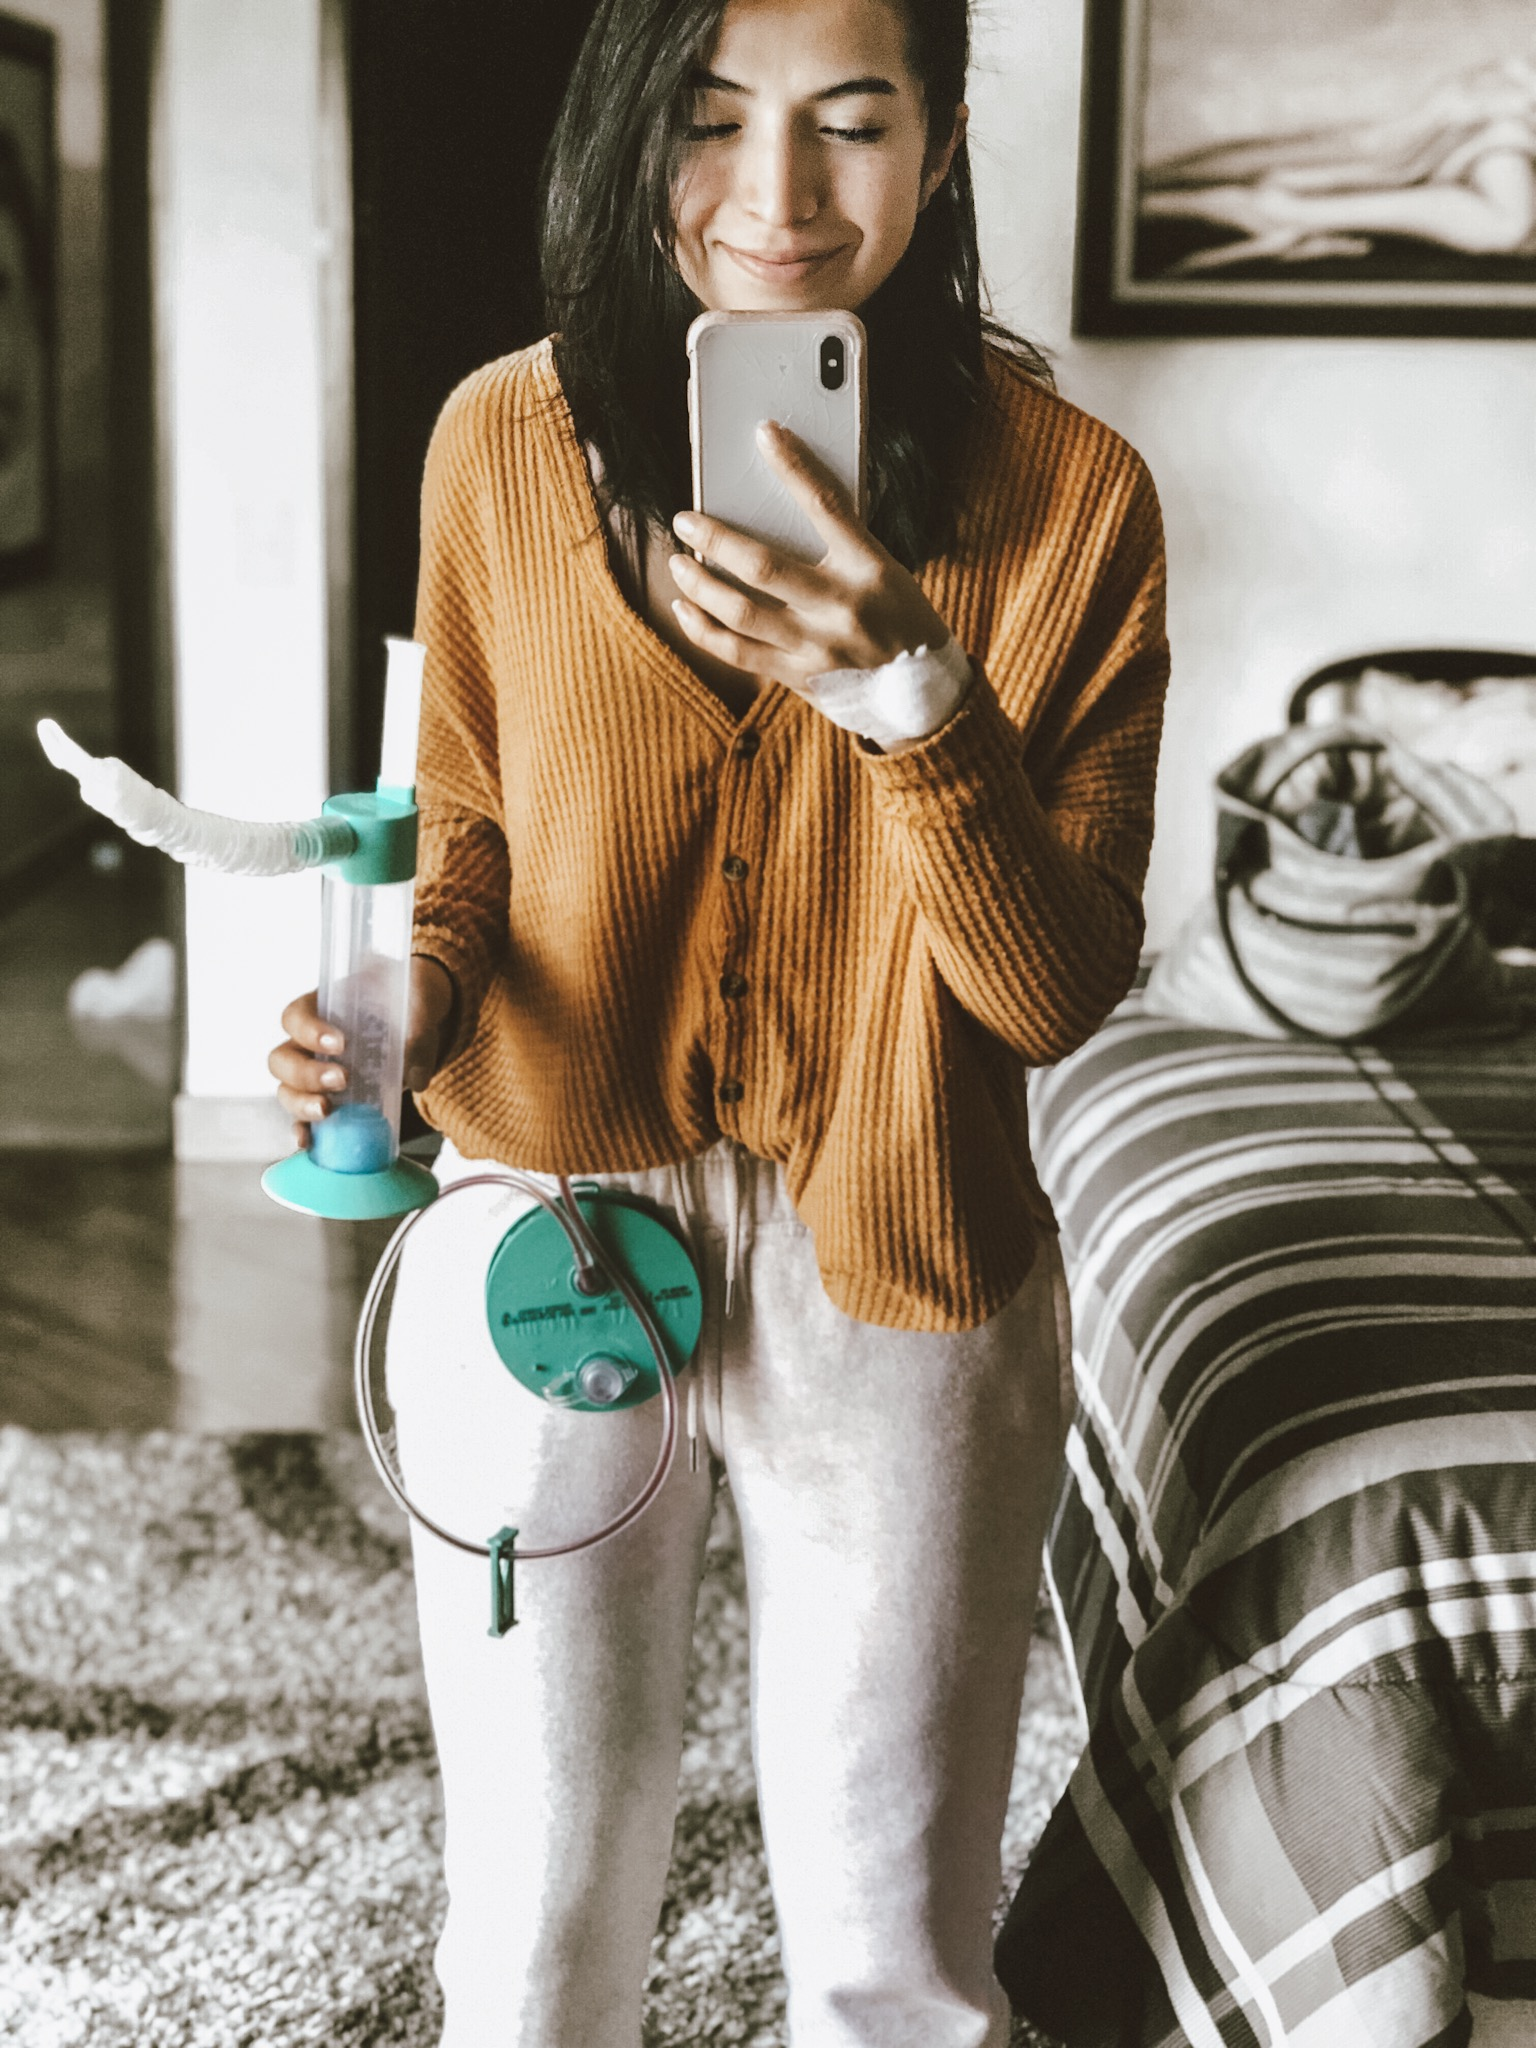 Recovering from surgery is no fun. BOO. Our post-tummy tuck outfits, compression garments to stretchy jeans, change week to week. Here's your shopping list.